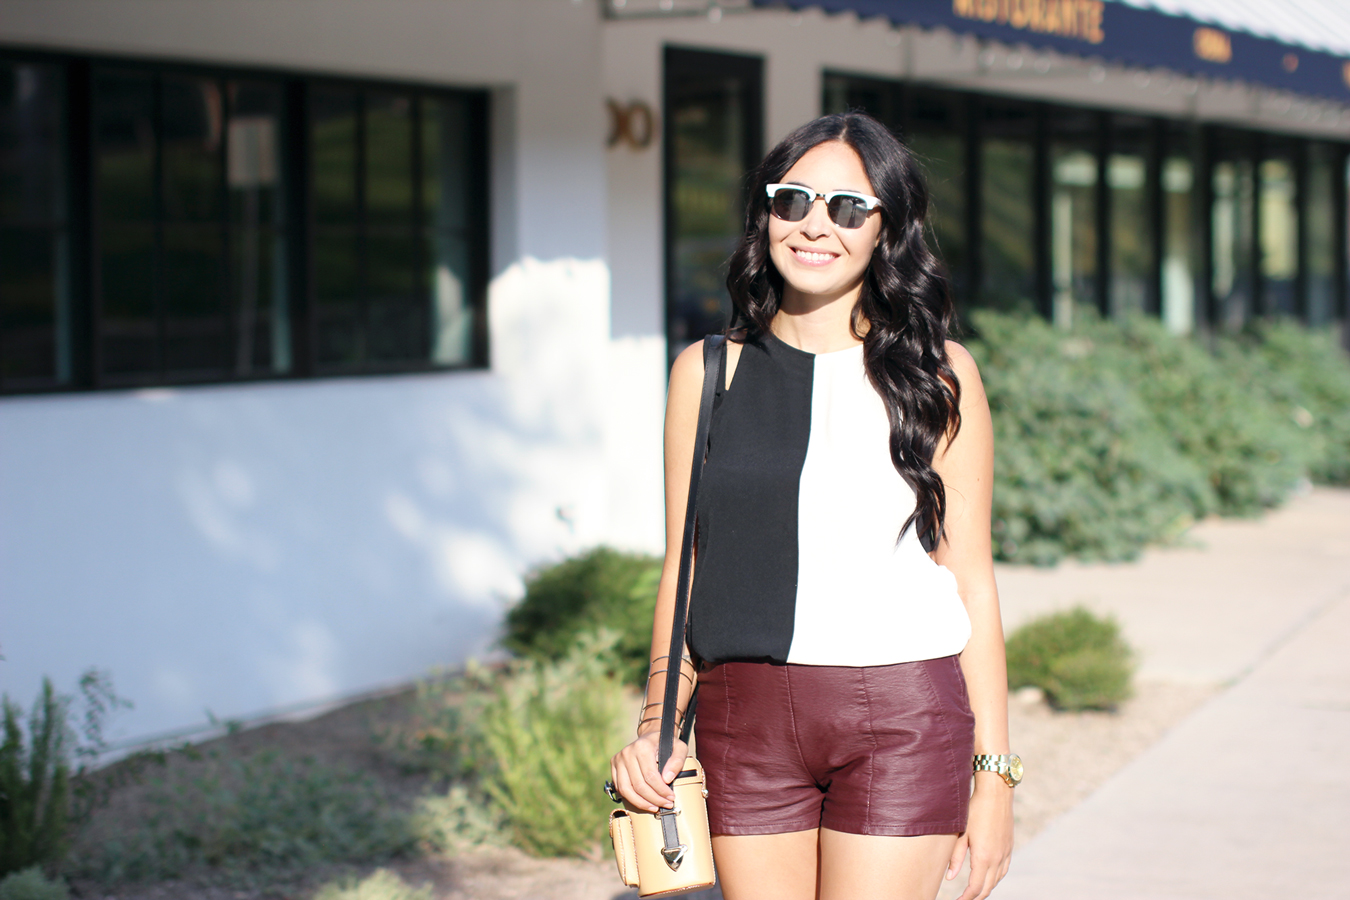 FIXIN-TO-THRILL-COLOR-BLOCK-LEATHER-SHORTS-CURLING-WAND-BLACK-WHITE-FALL-ATX-AUSTIN-STYLE-BLOG-SHIRTS-COLORS-TRENDS-FW15-TRENDY-CHIC-GLAM-FASHION-TEXAS-4